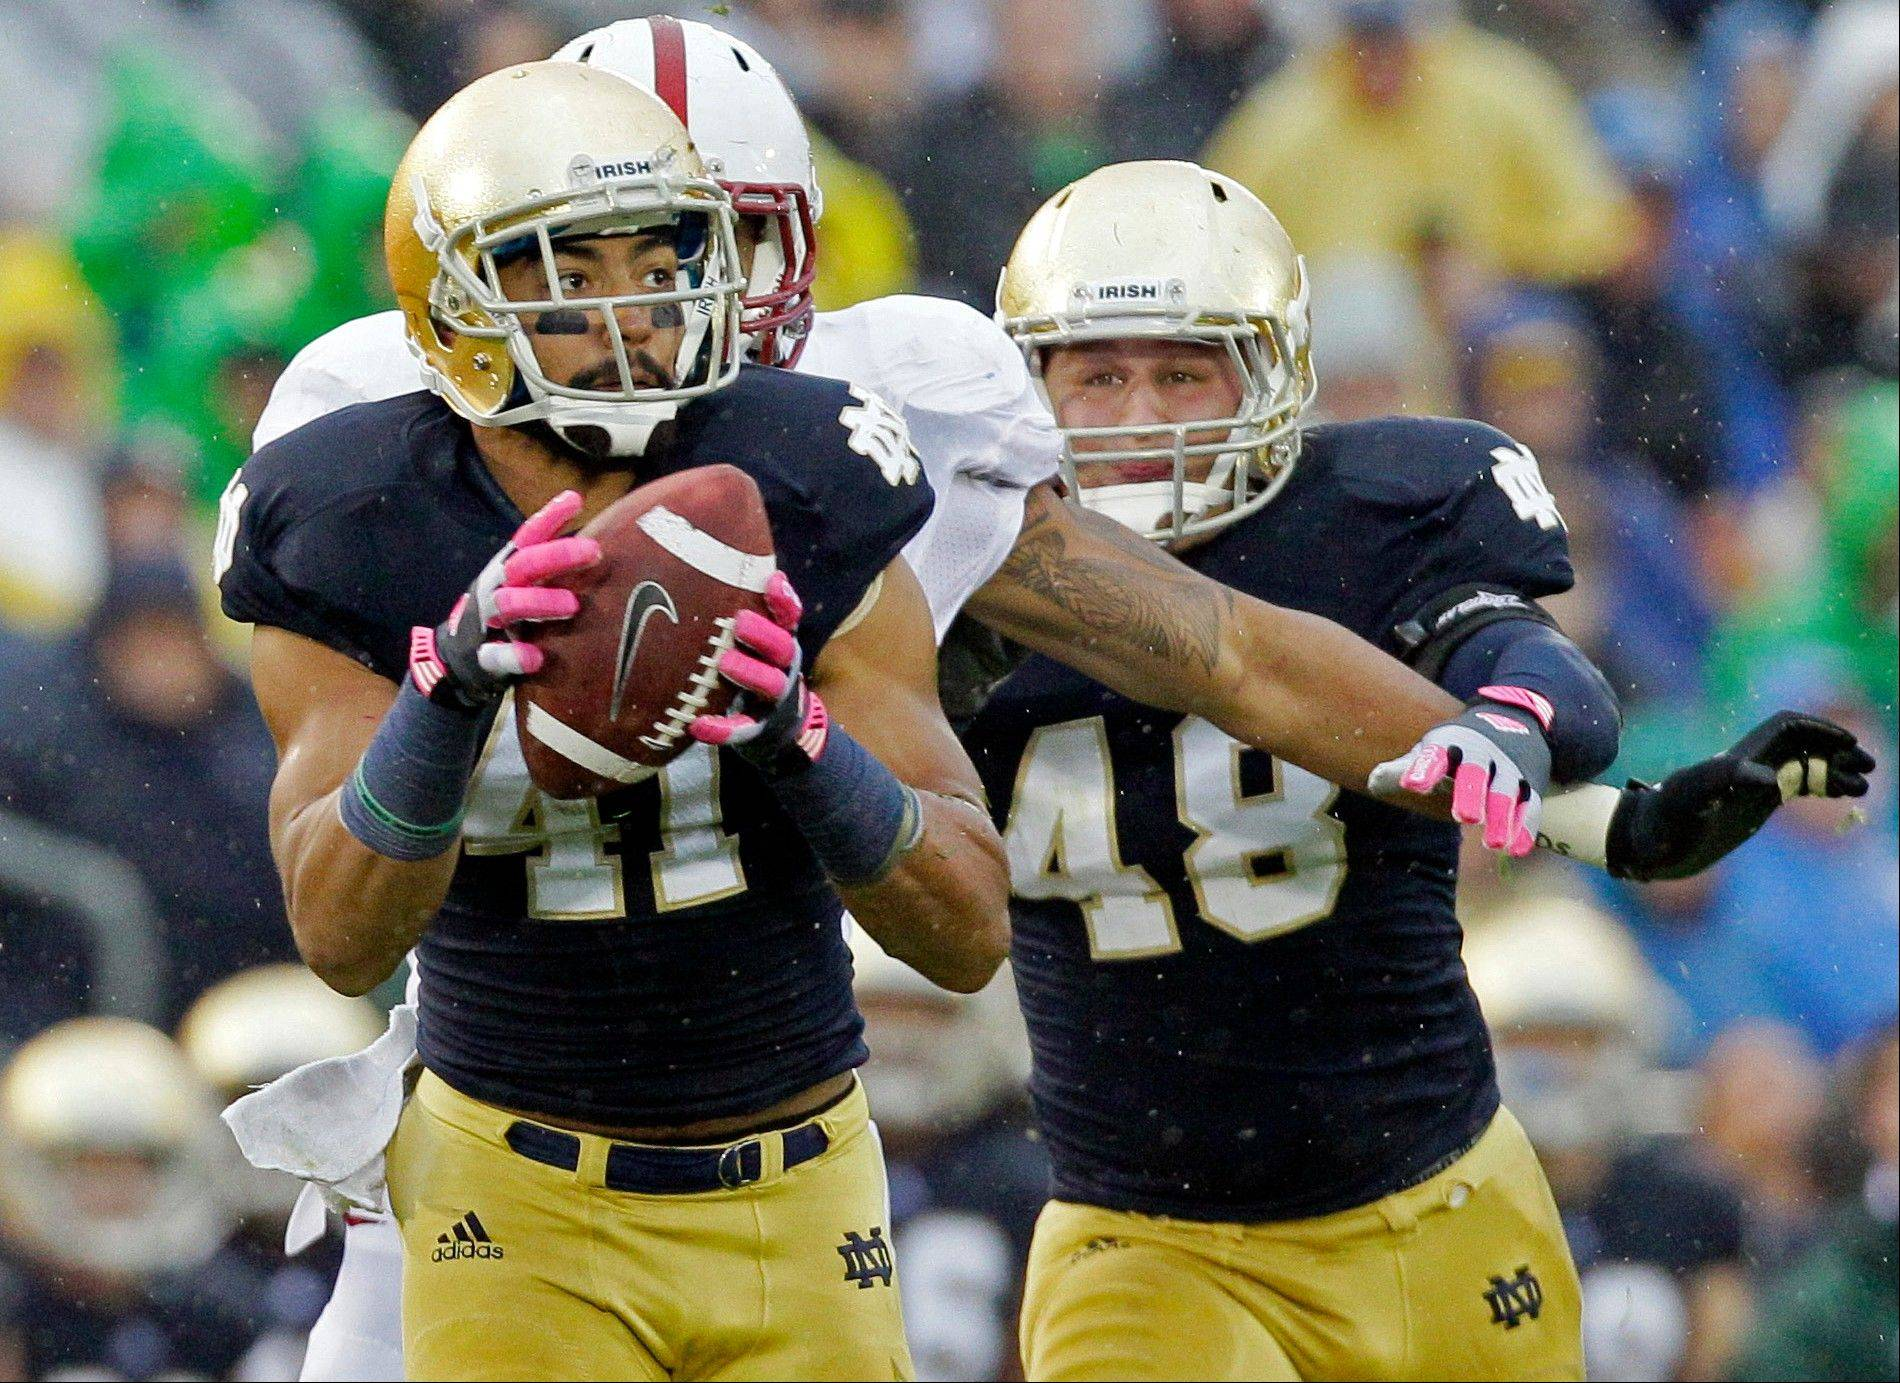 Notre Dame safety Matthias Farley (41) intercepts a pass past Stanford tight end Levine Toliolo. Farley was a soccer player before transitioning to football, first as a wide receiver and now a starting safety for No. 1 Notre Dame.